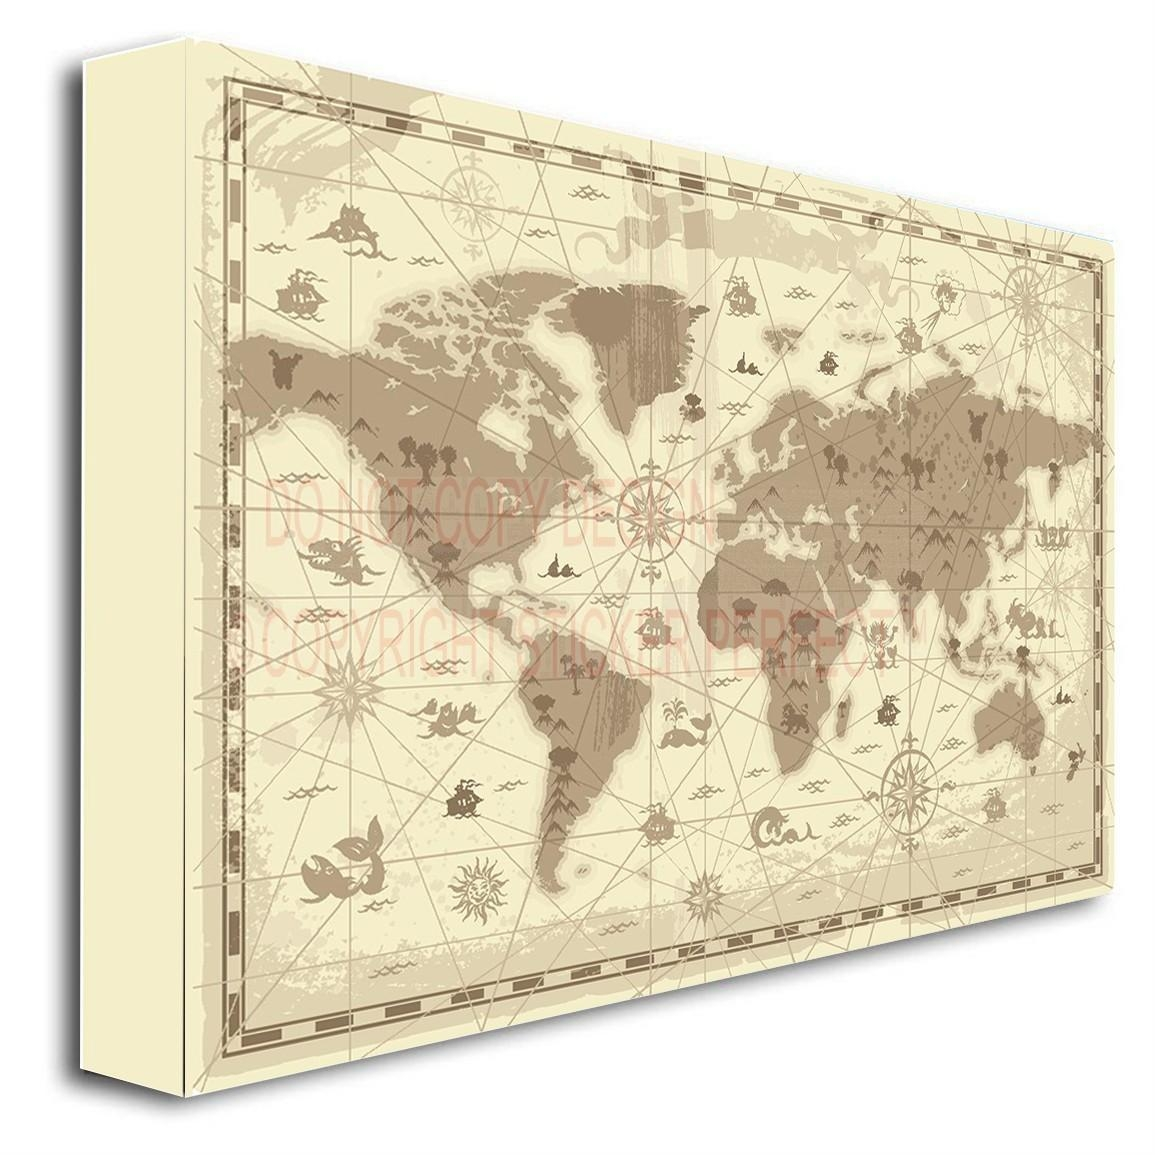 Framed Canvas Print World Map Kids Children Learning Cute Wall Art Pertaining To Framed World Map Wall Art (View 15 of 20)